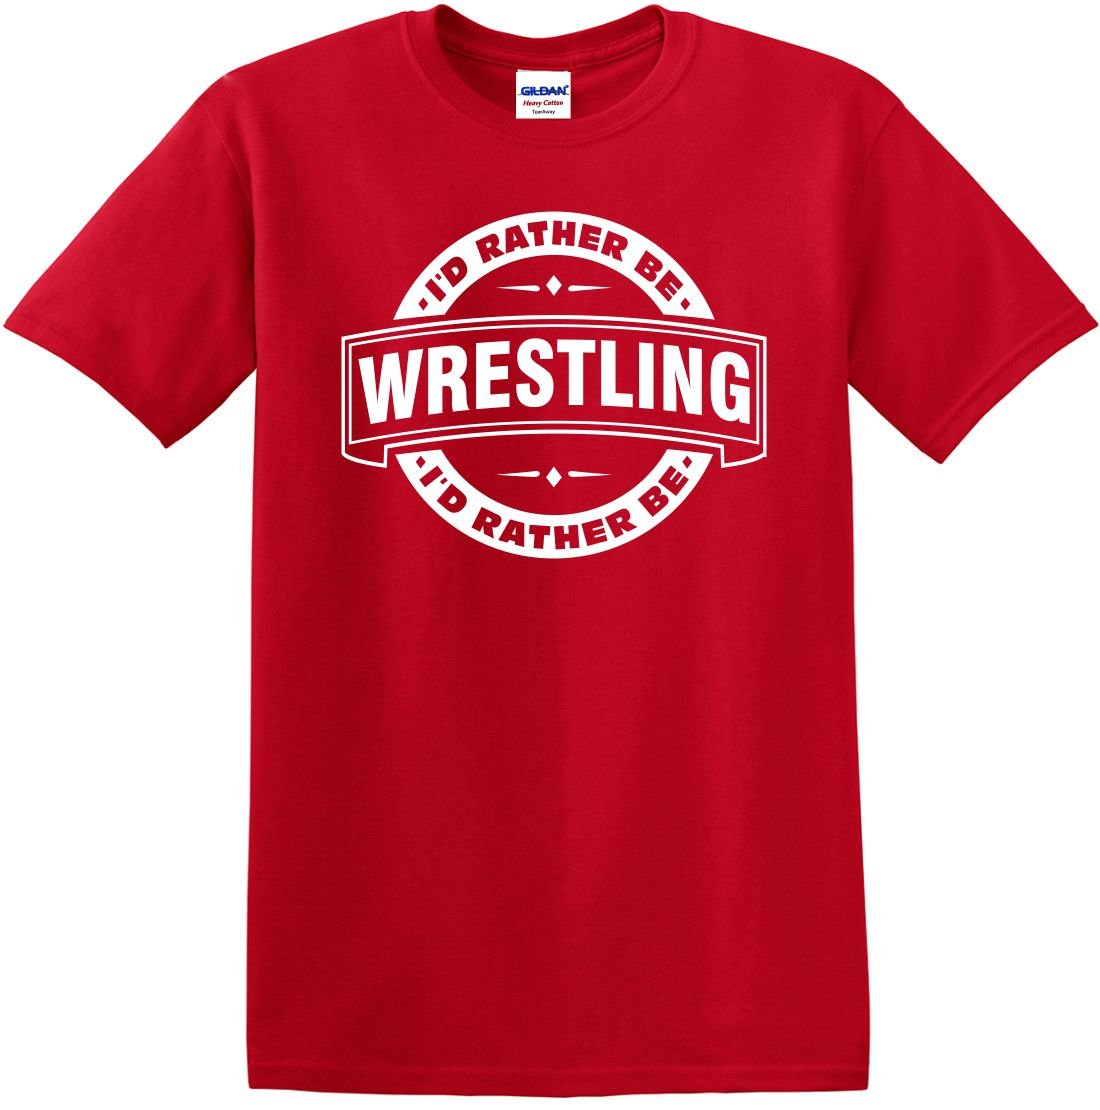 Youth T-Shirt ID Rather Be Wrestling (Badge) Small Funny Kids by Mighty Ambitious